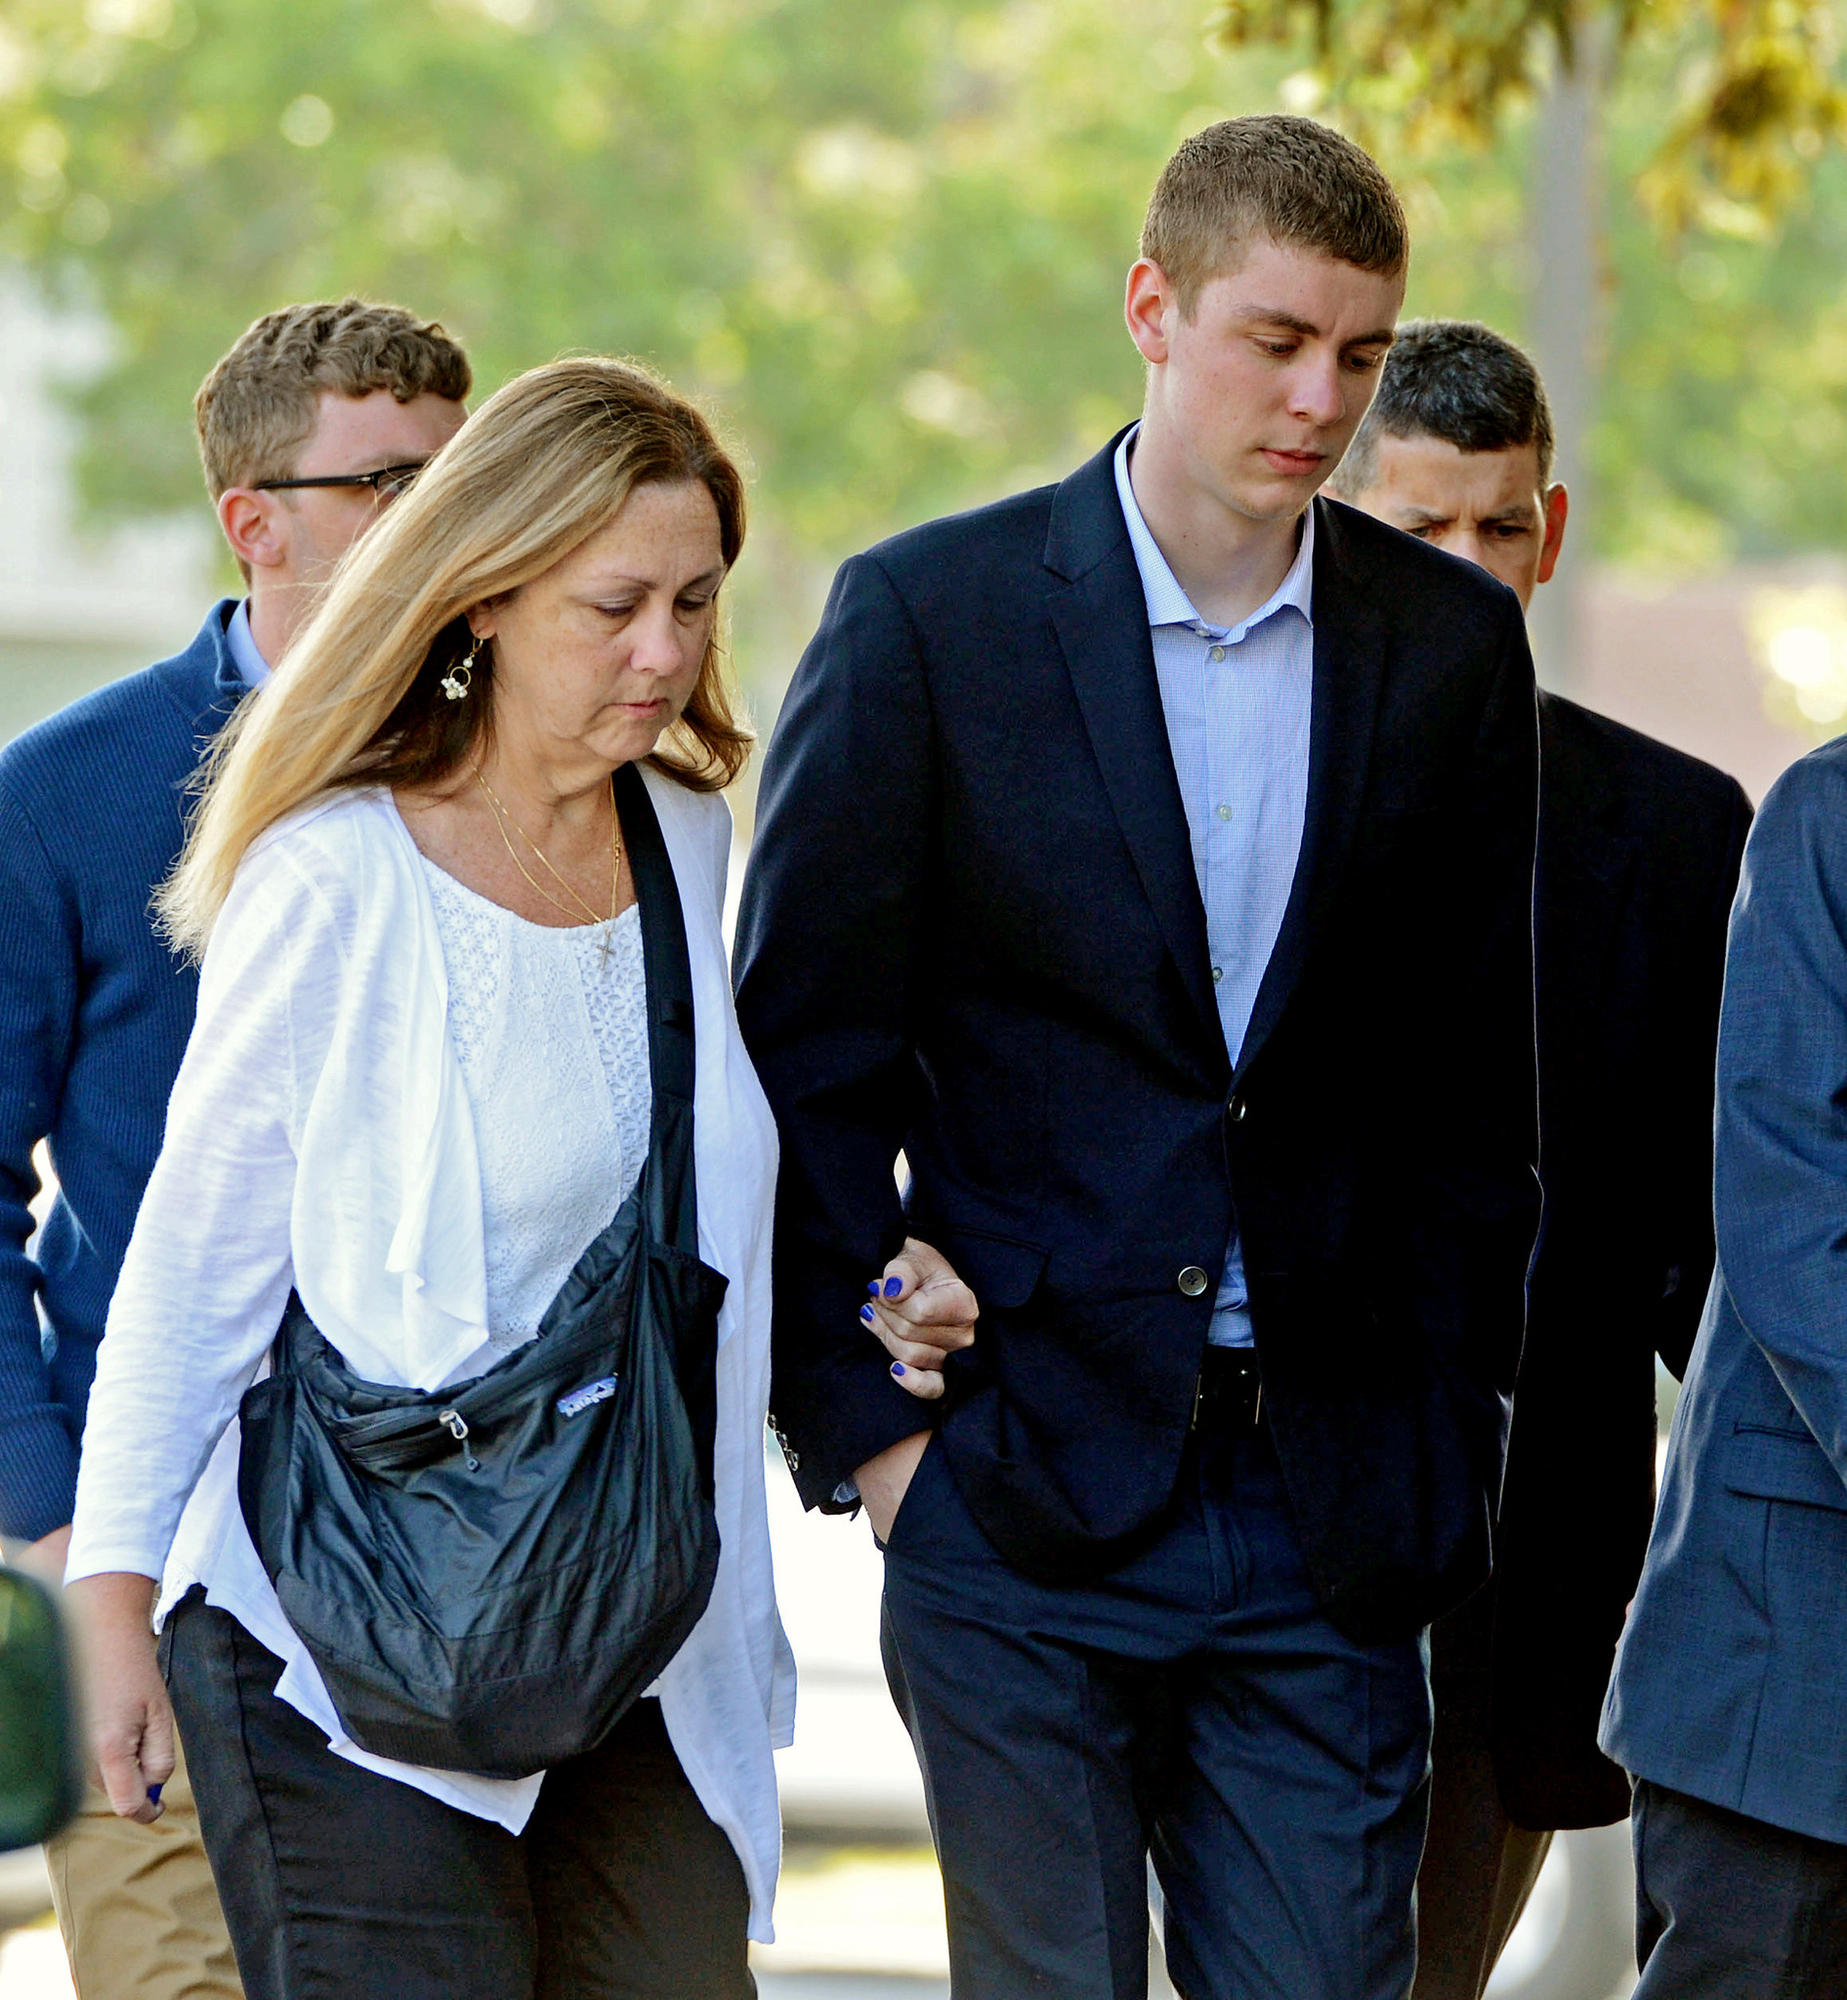 Brock Turner, right, makes his way into the Santa Clara County Superior Courthouse in Palo Alto.